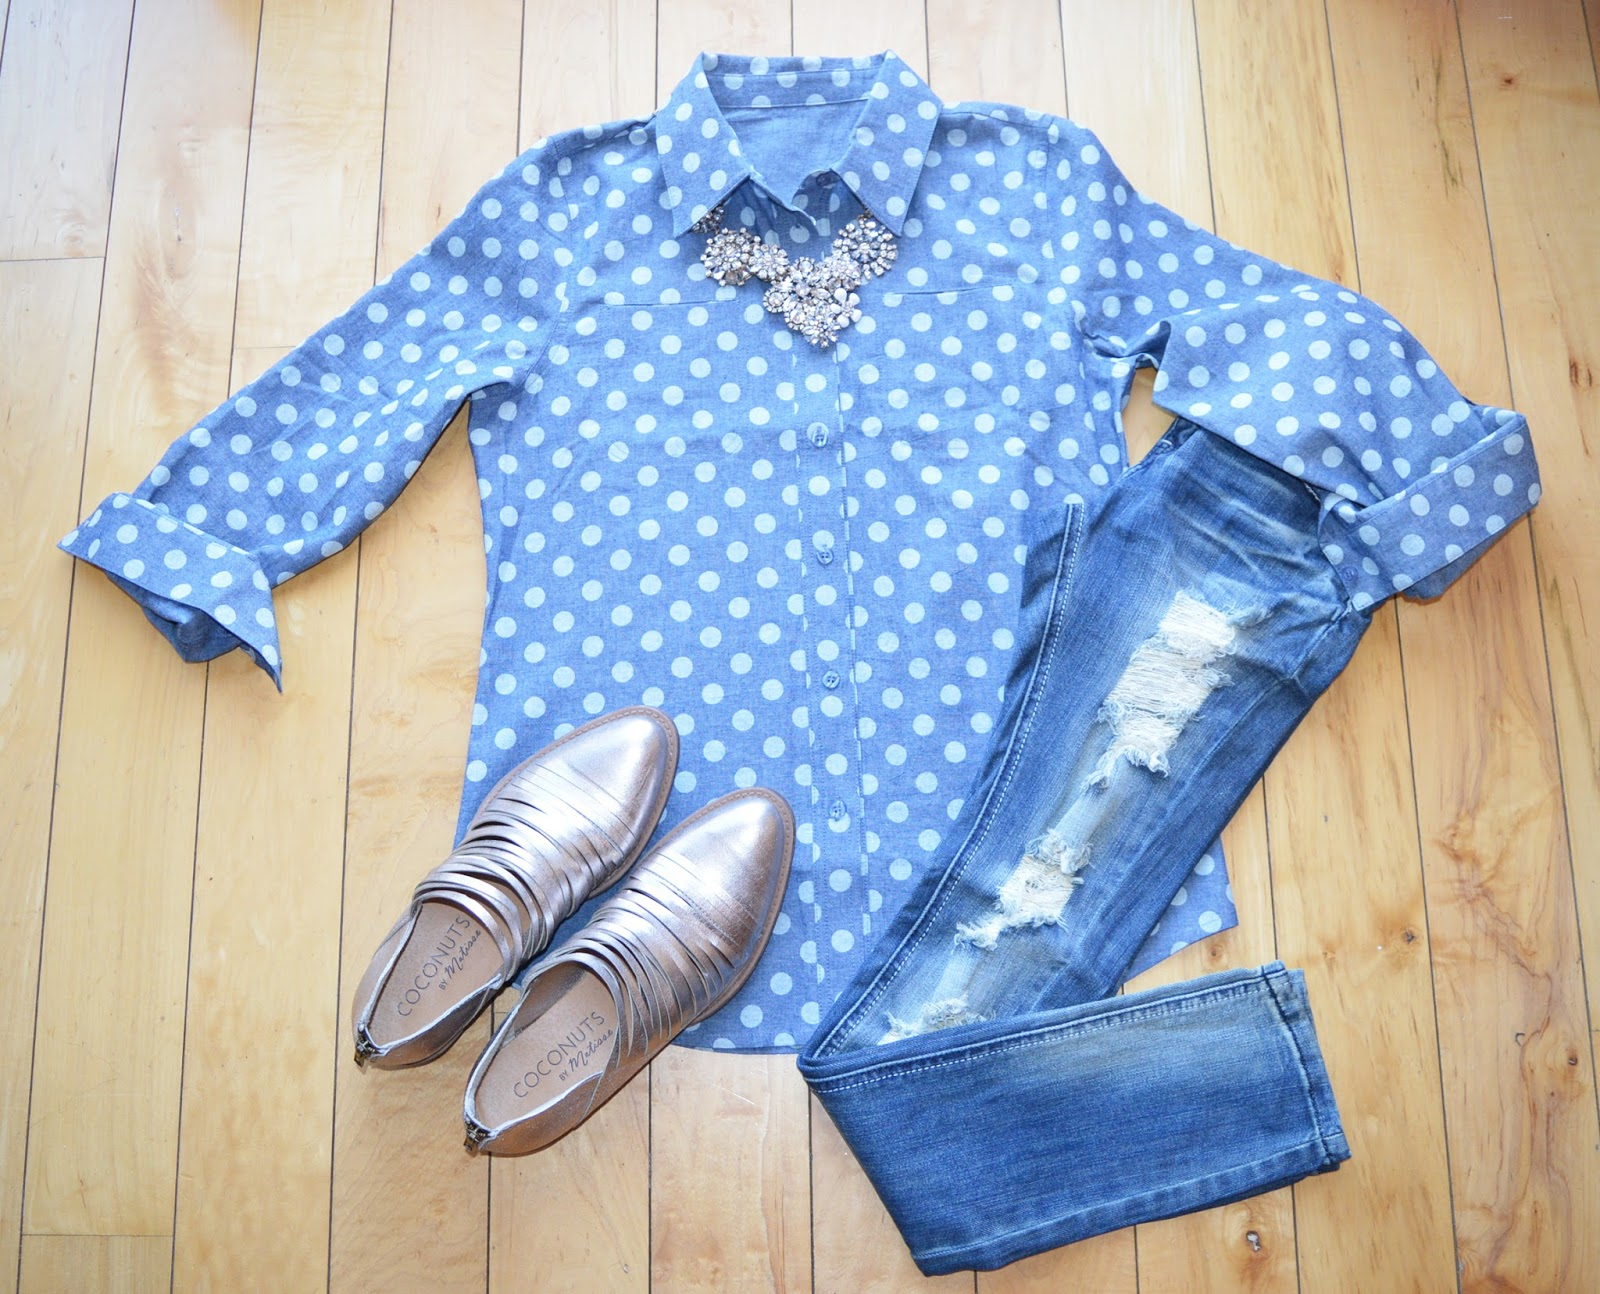 http://taralynnsboutique.com/collections/long-sleeves/products/polka-dot-chambray-shirt